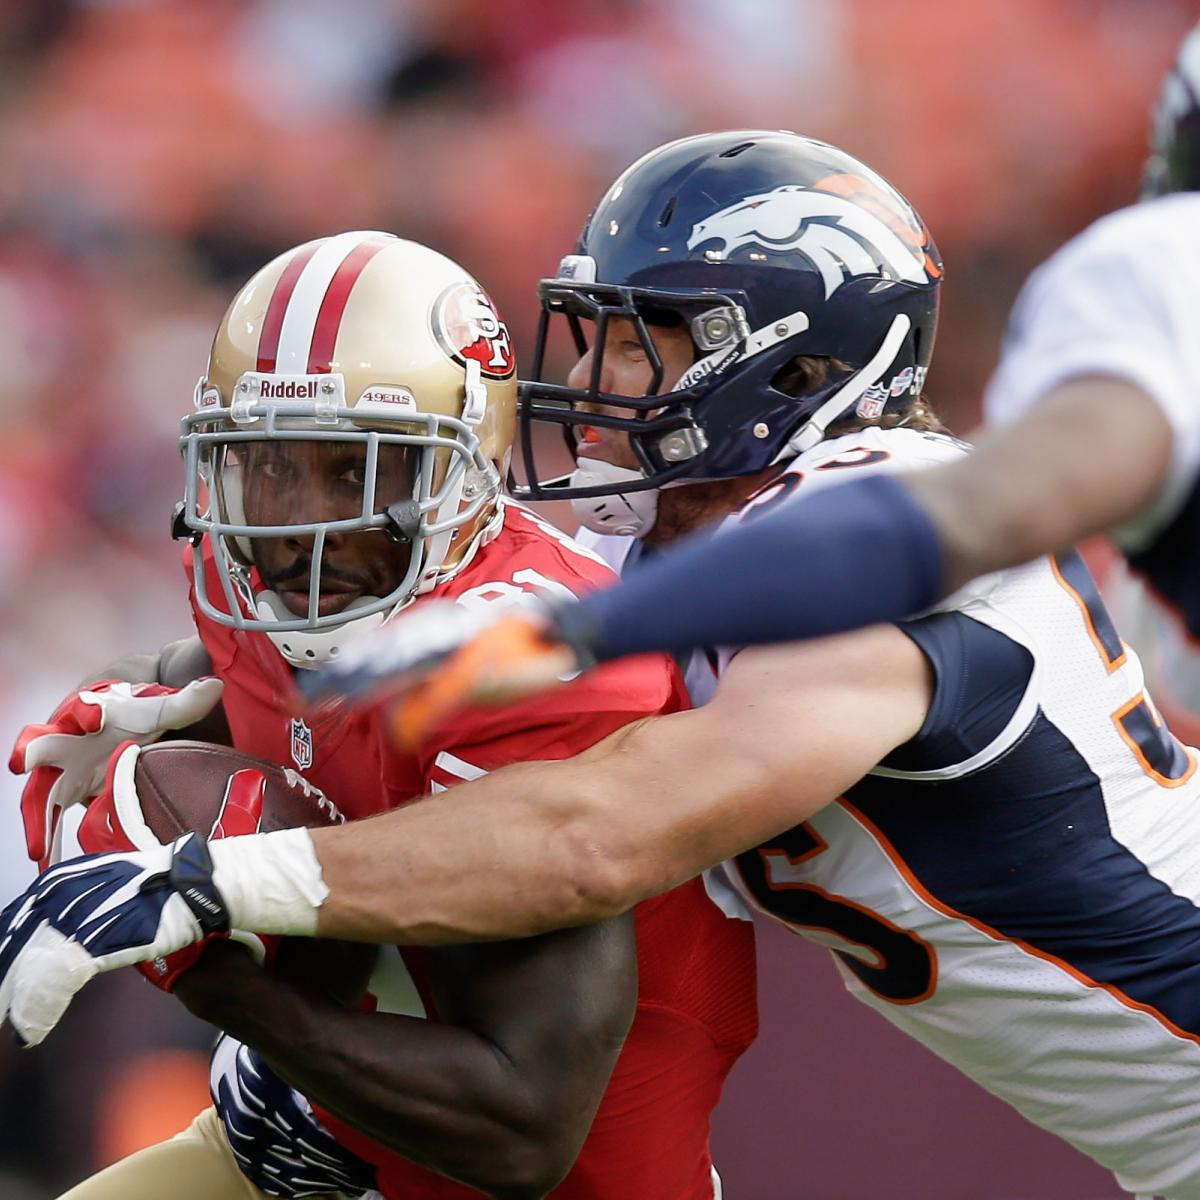 Denver News Weekly: San Francisco 49ers Vs Denver Broncos: 49ers' Preseason